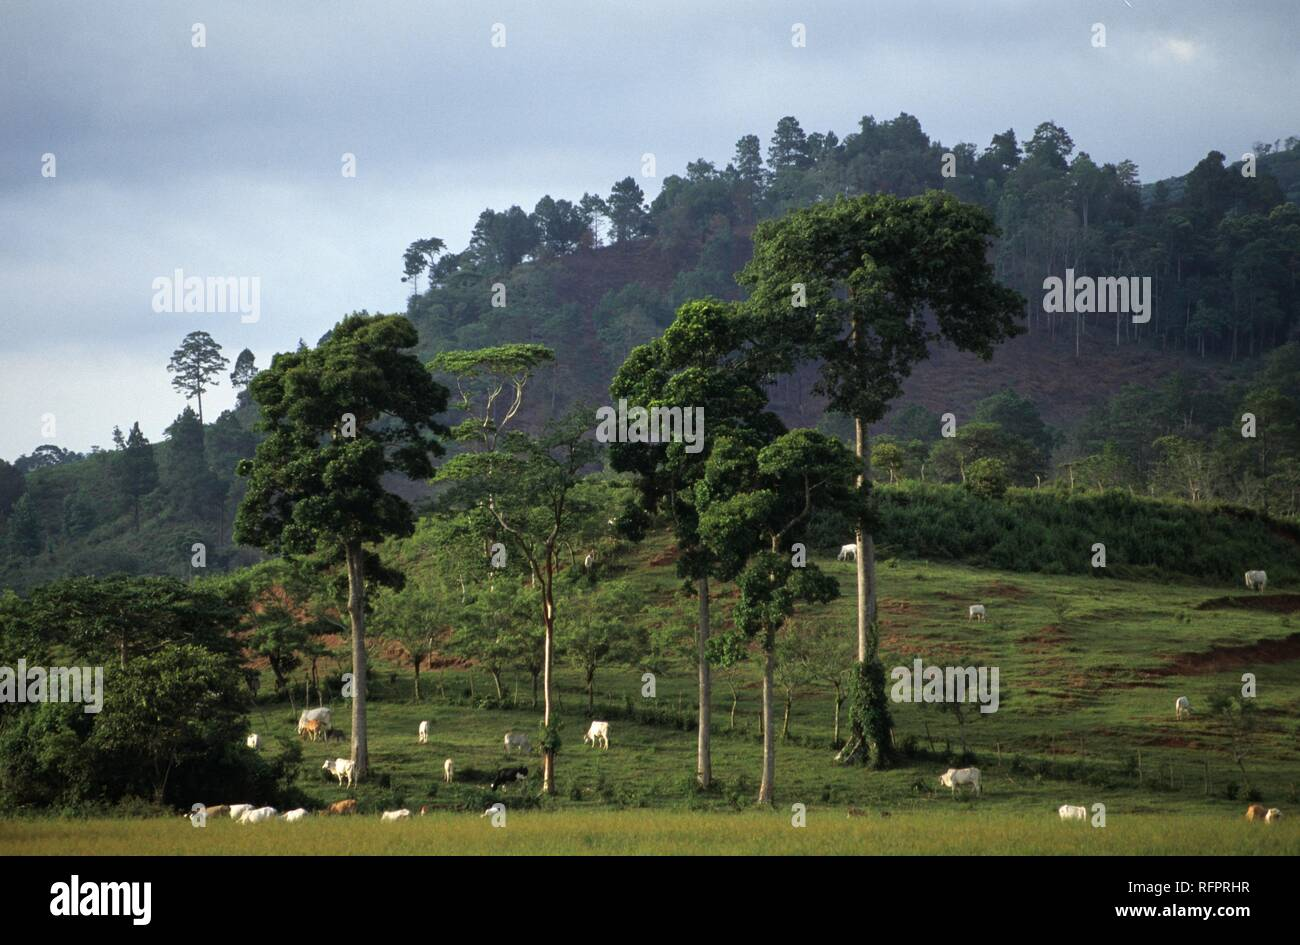 Pastureland near the road between La Entrada and Copan, Honduras - Stock Image